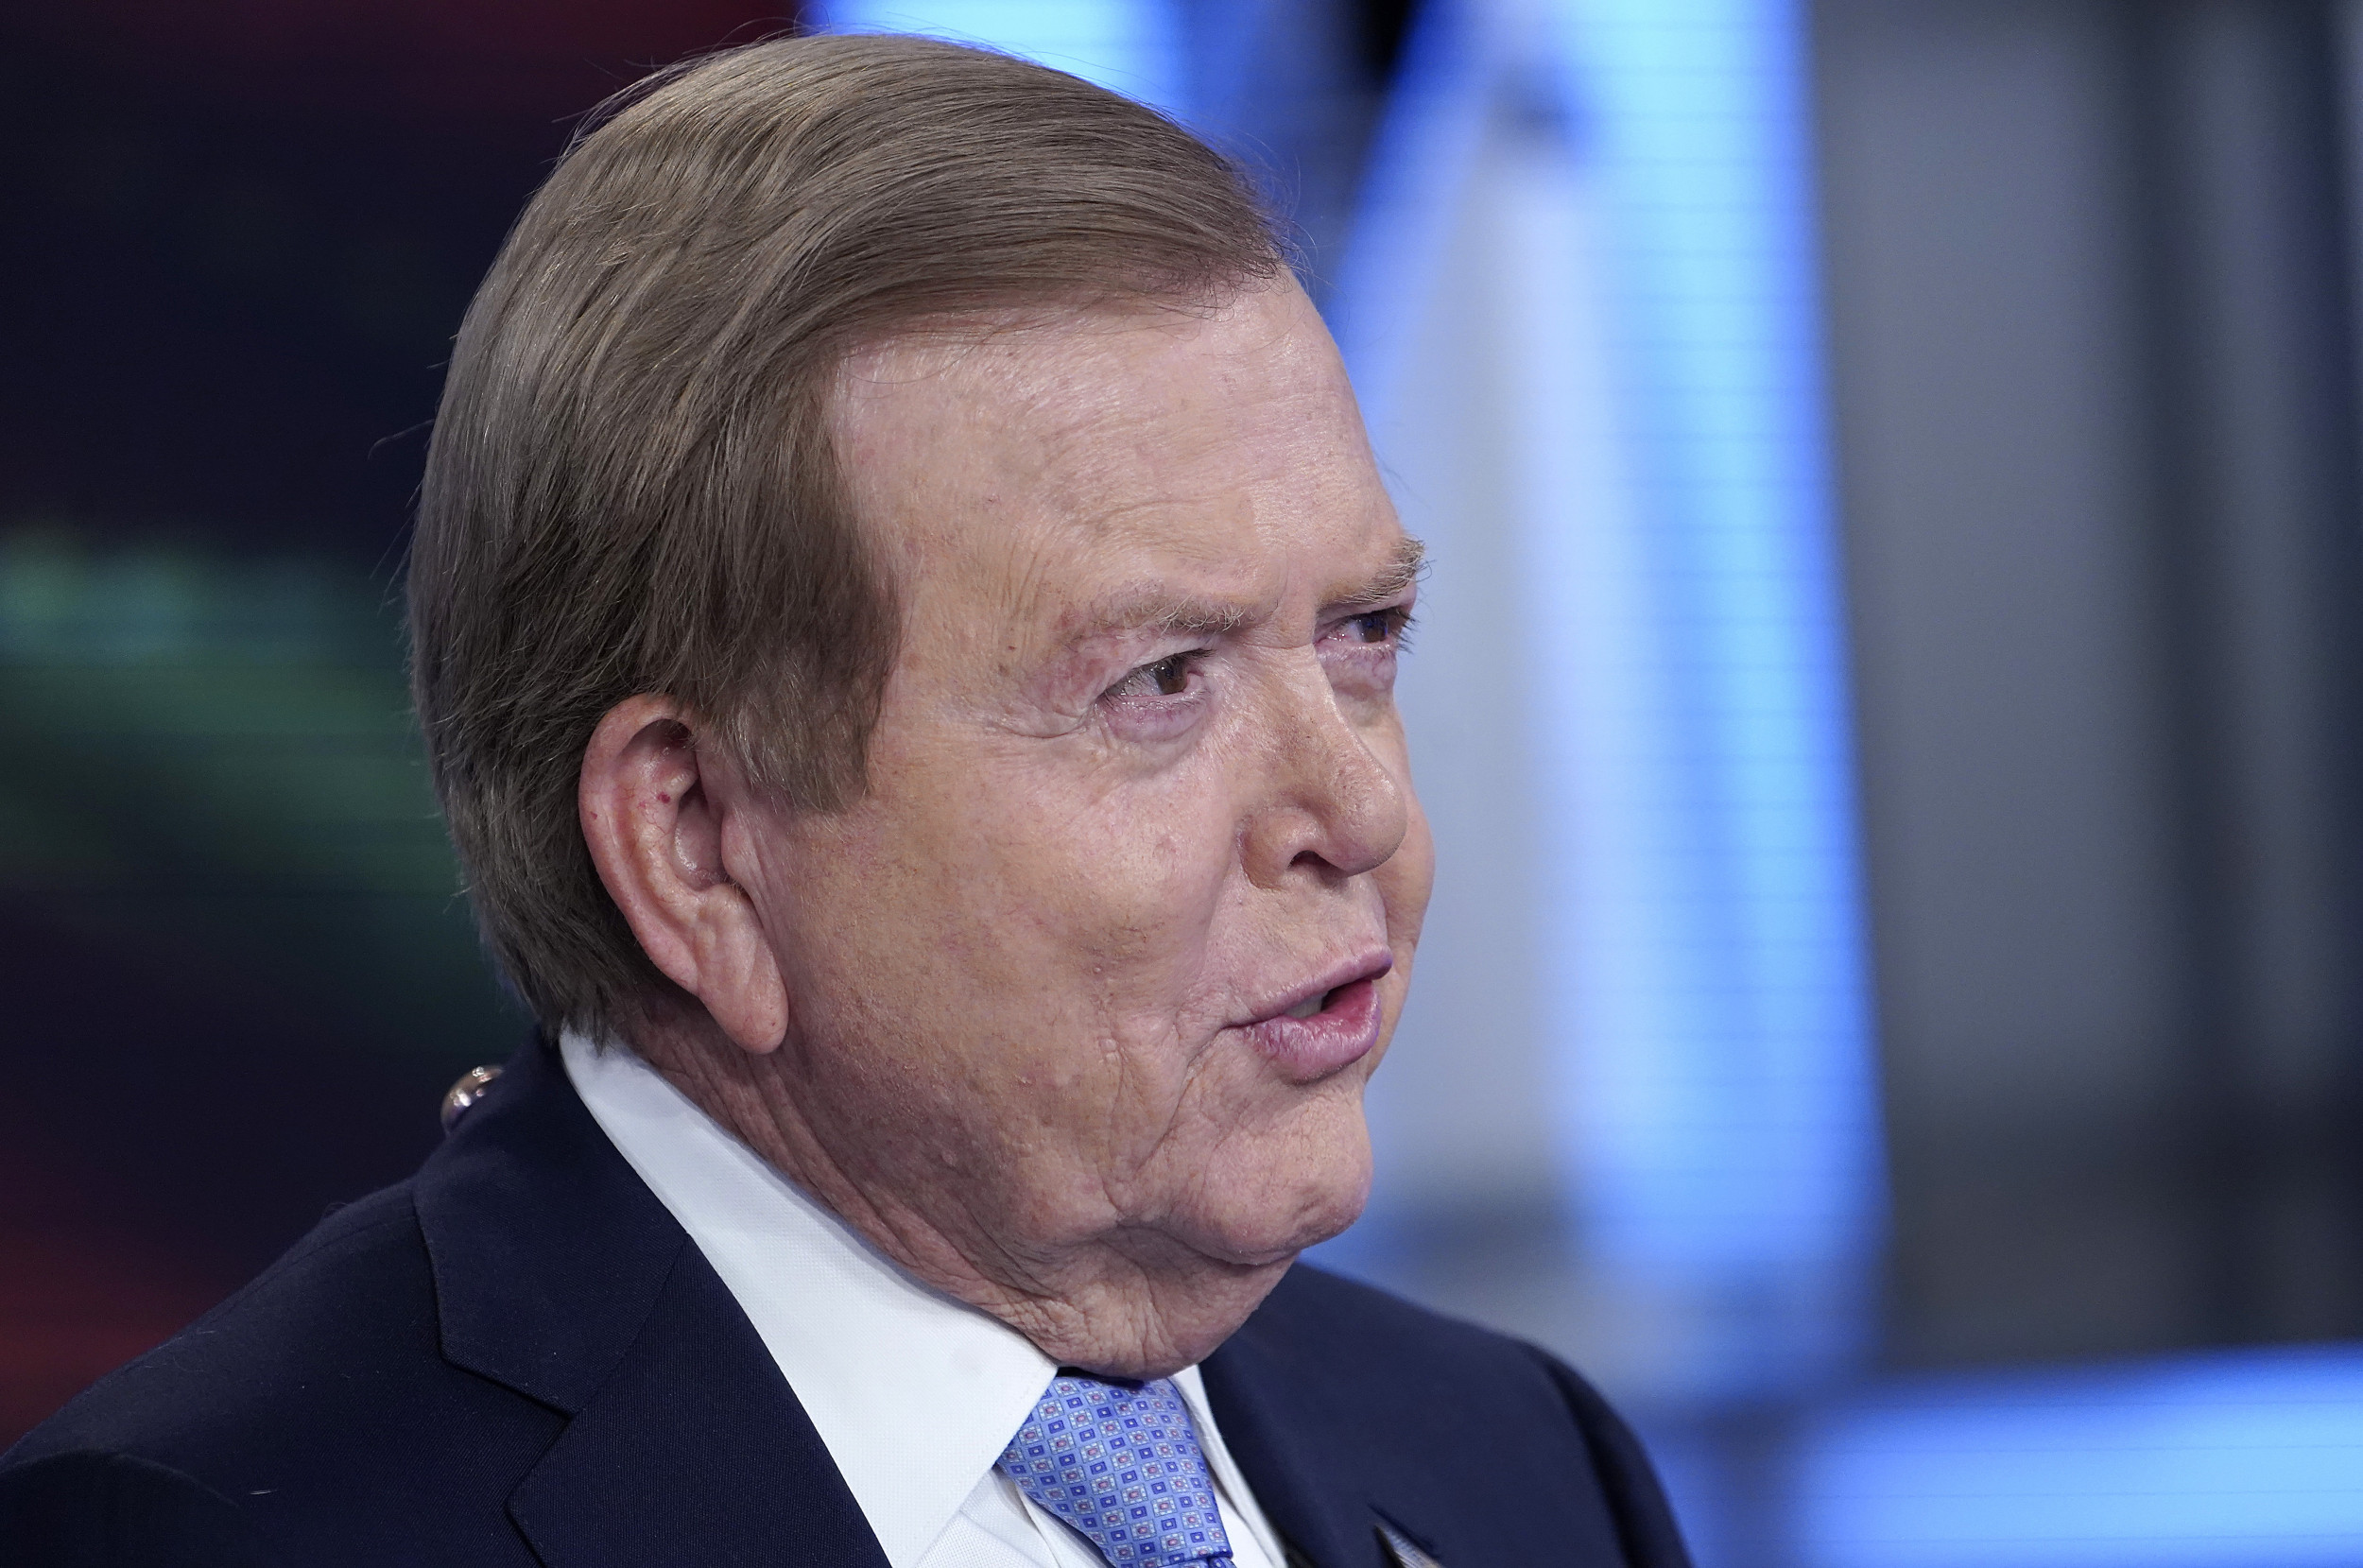 """Fox's Lou Dobbs condemns Barr one day after he praised him for doing the """"Lord's work,"""" says he """"doesn't get"""" what Trump's been through"""